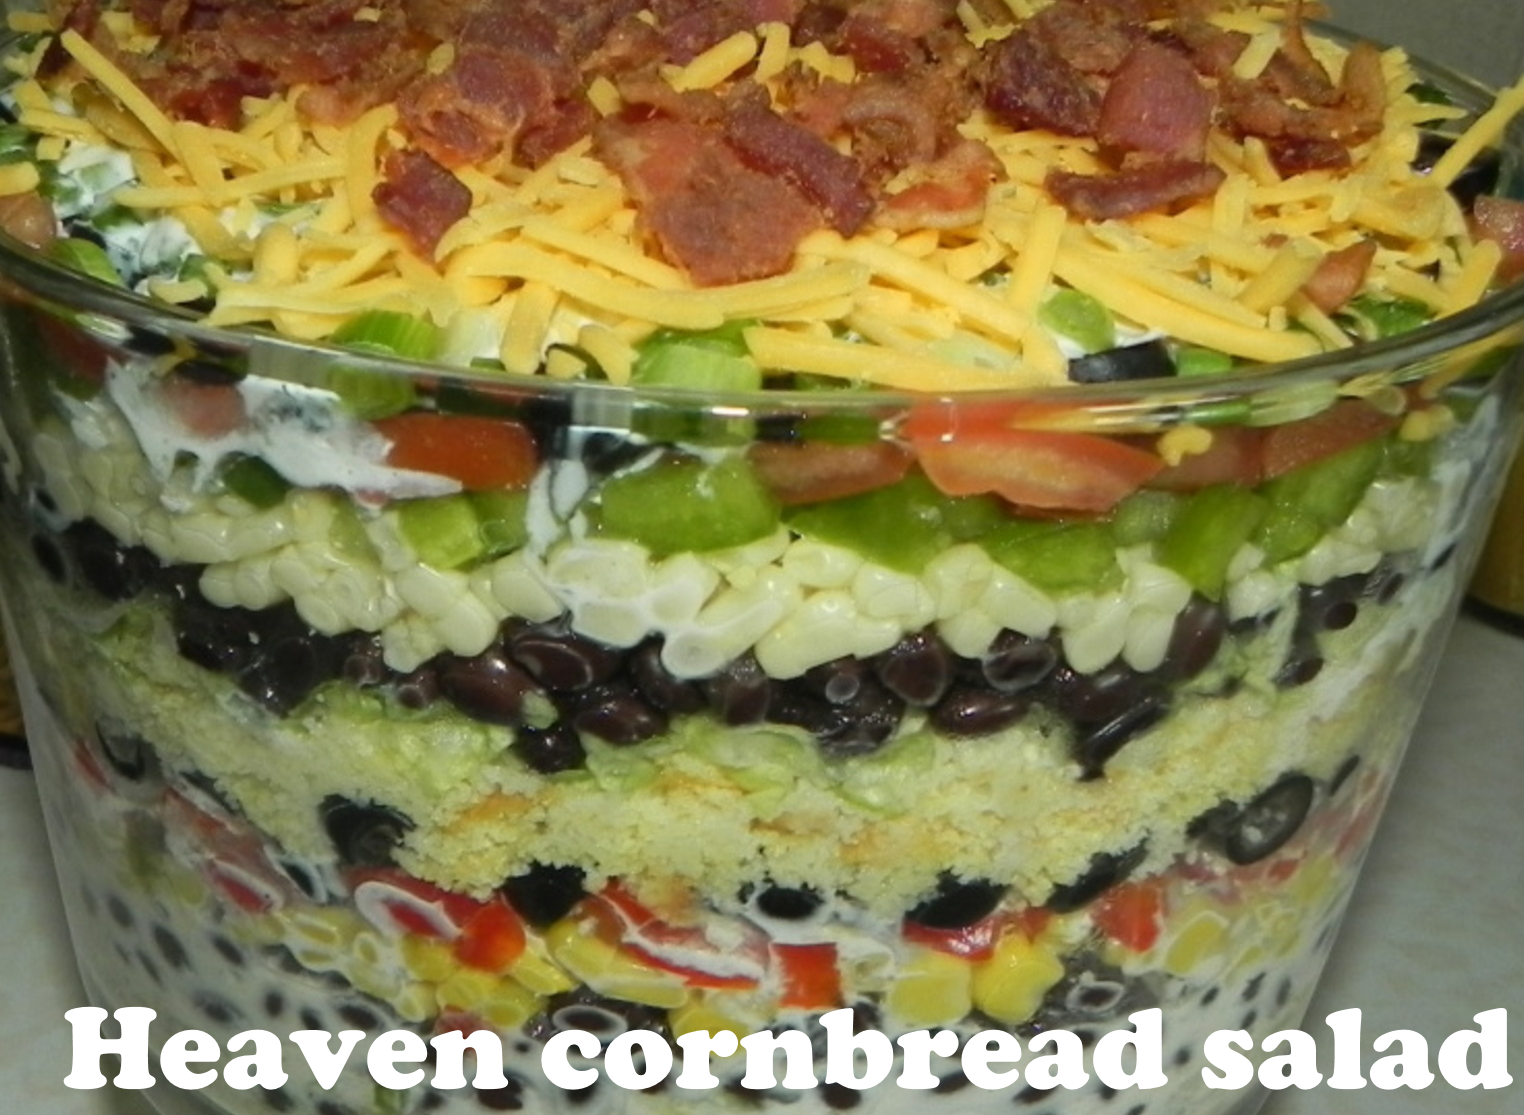 The ingredients:        1 (16 ounce) package corn bread mix      1 1/2 cups sour cream      1 1/2 cups mayonnaise      10 slices baco...